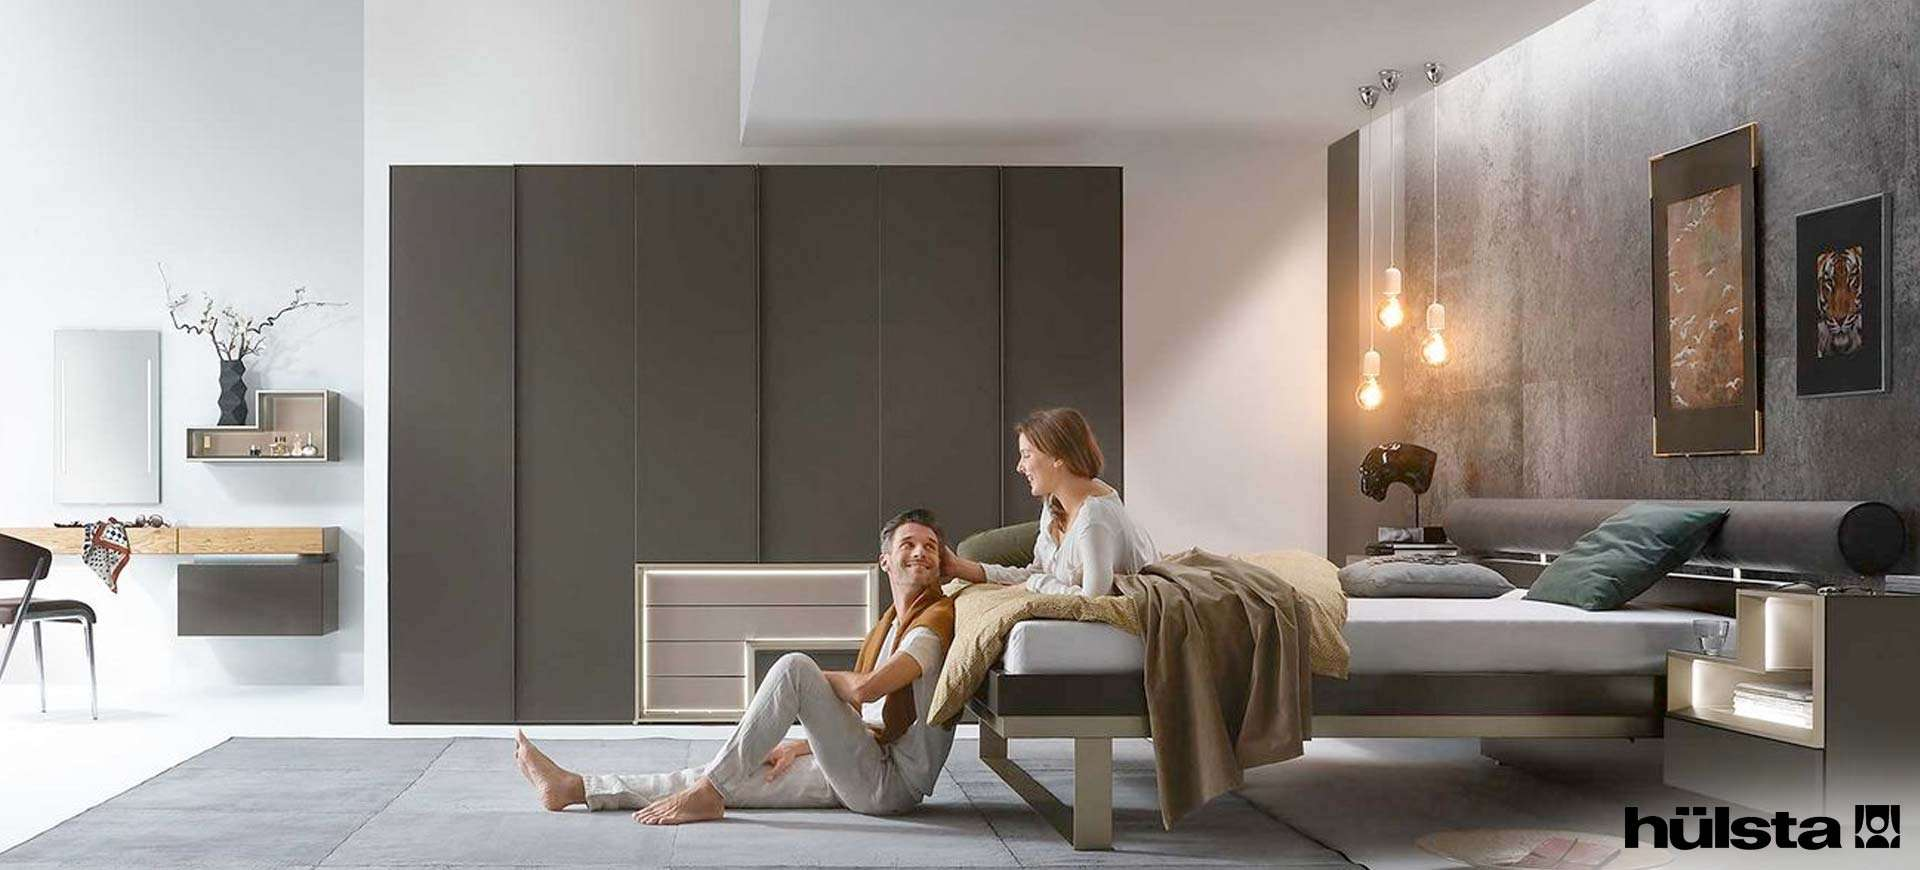 m belmarkt m nster h lsta m bel in m nster b darmstadt. Black Bedroom Furniture Sets. Home Design Ideas